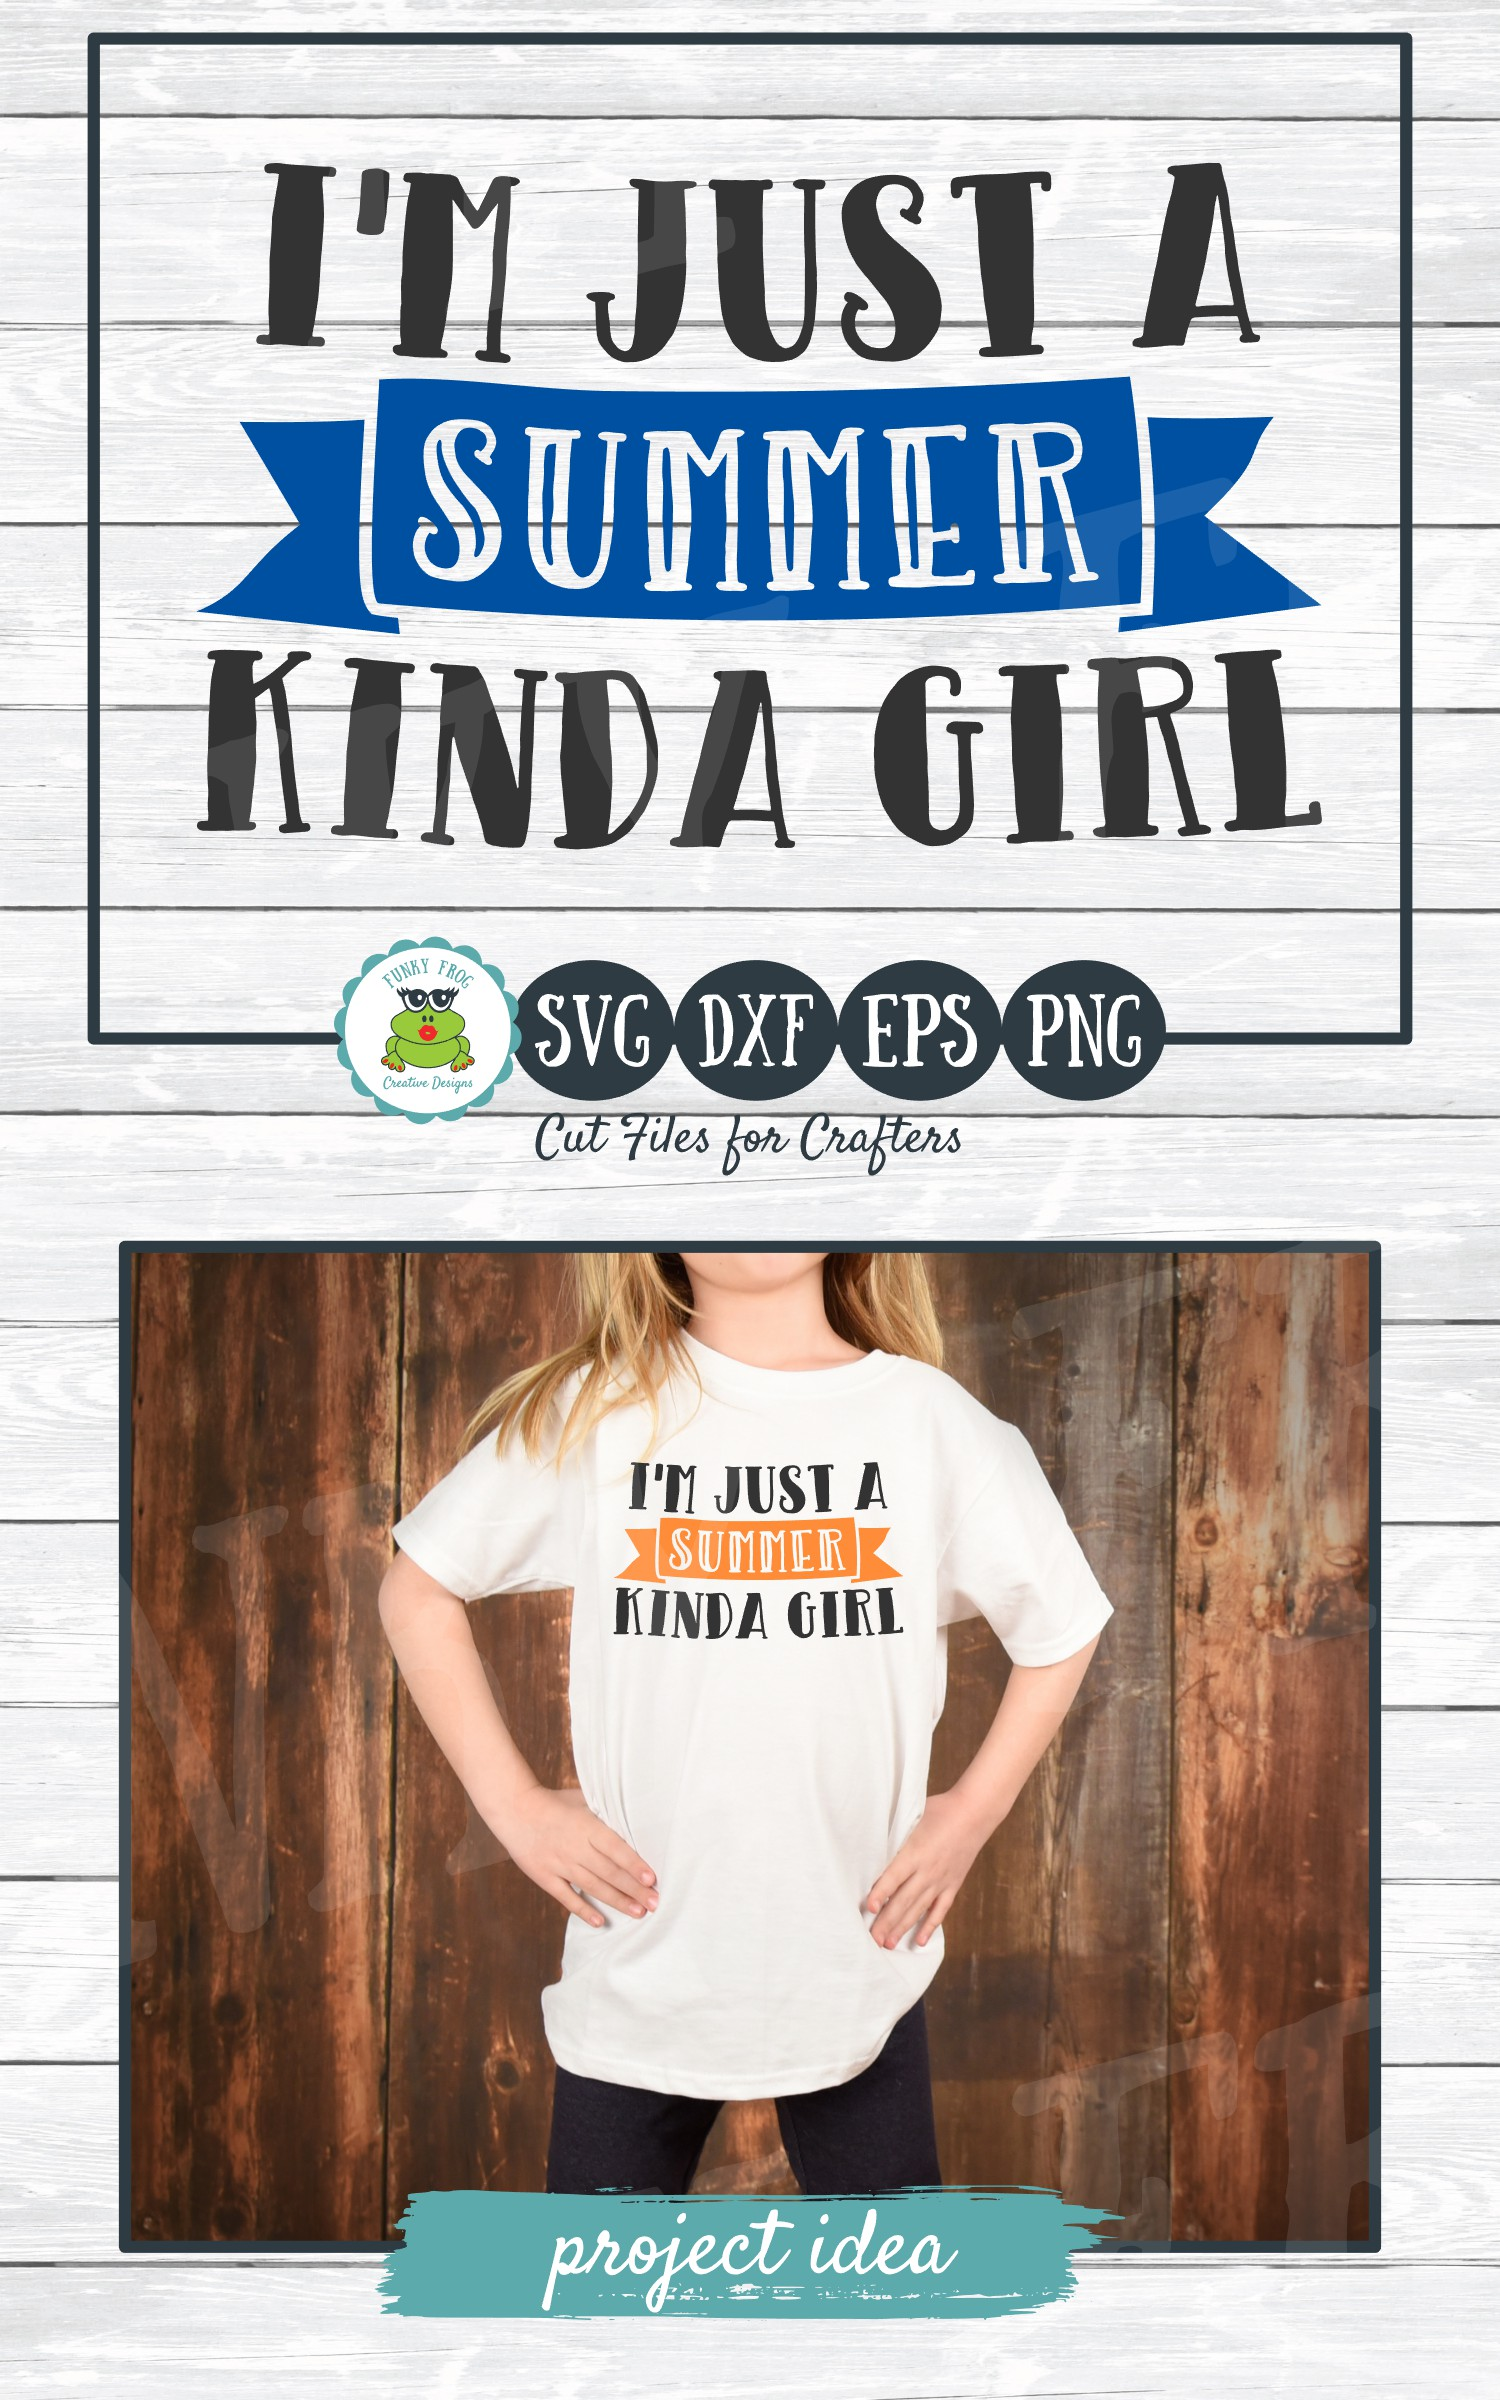 I'm Just a Summer Kinda Girl, SVG Cut File for Crafters example image 4